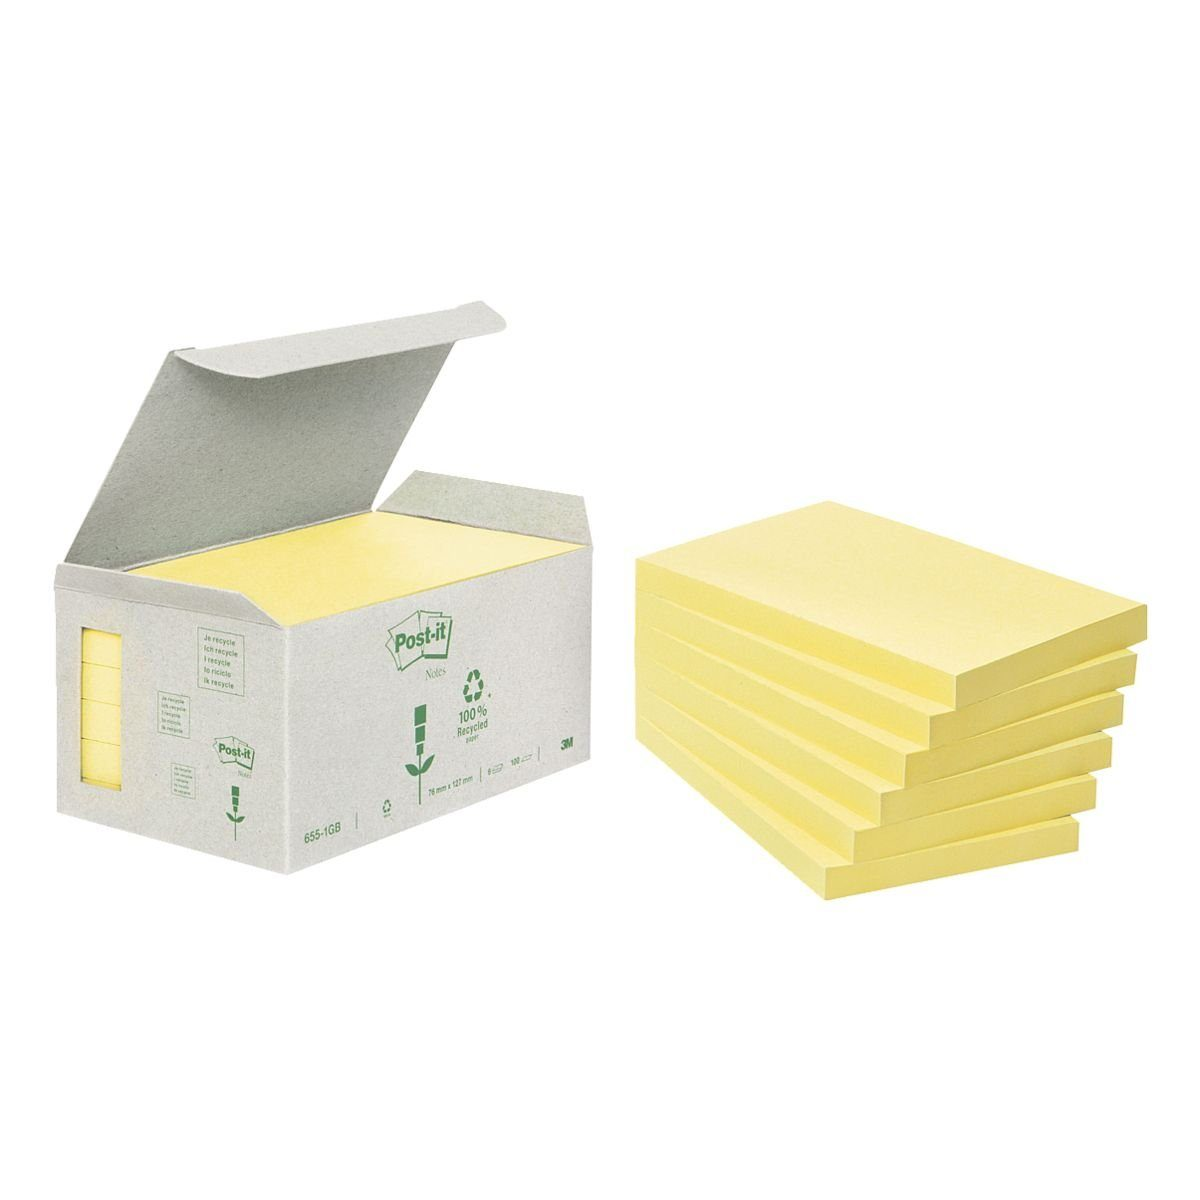 Post-it Notes (Recycle) Haftnotizblock 12,7 x 7,6 cm, 6 Stück »Recycling Notes 655«